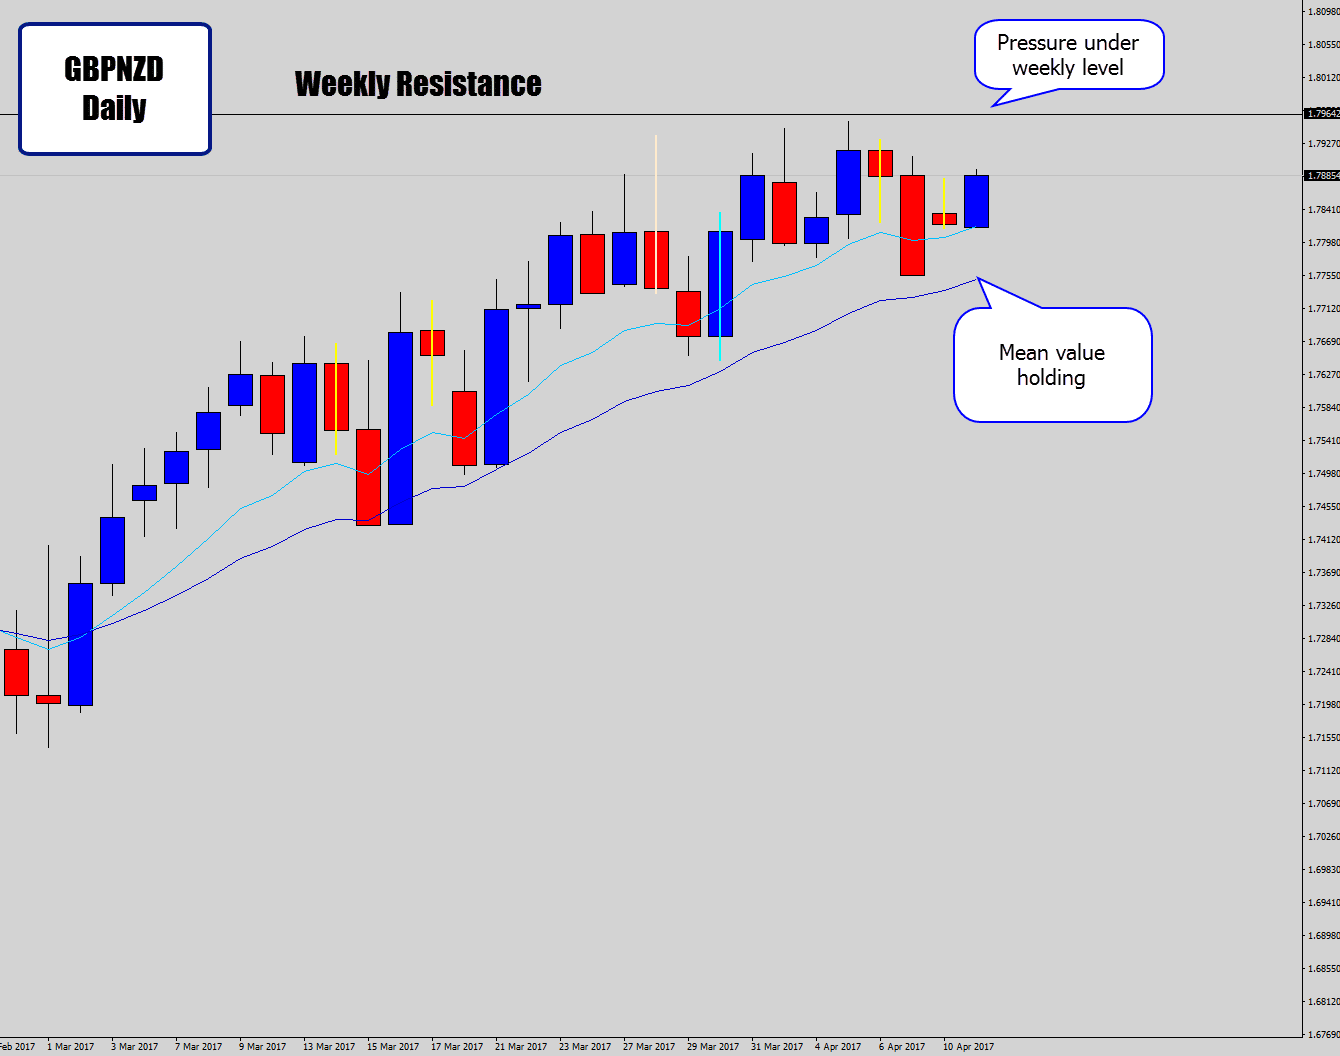 gbpnzd contesting weekly level